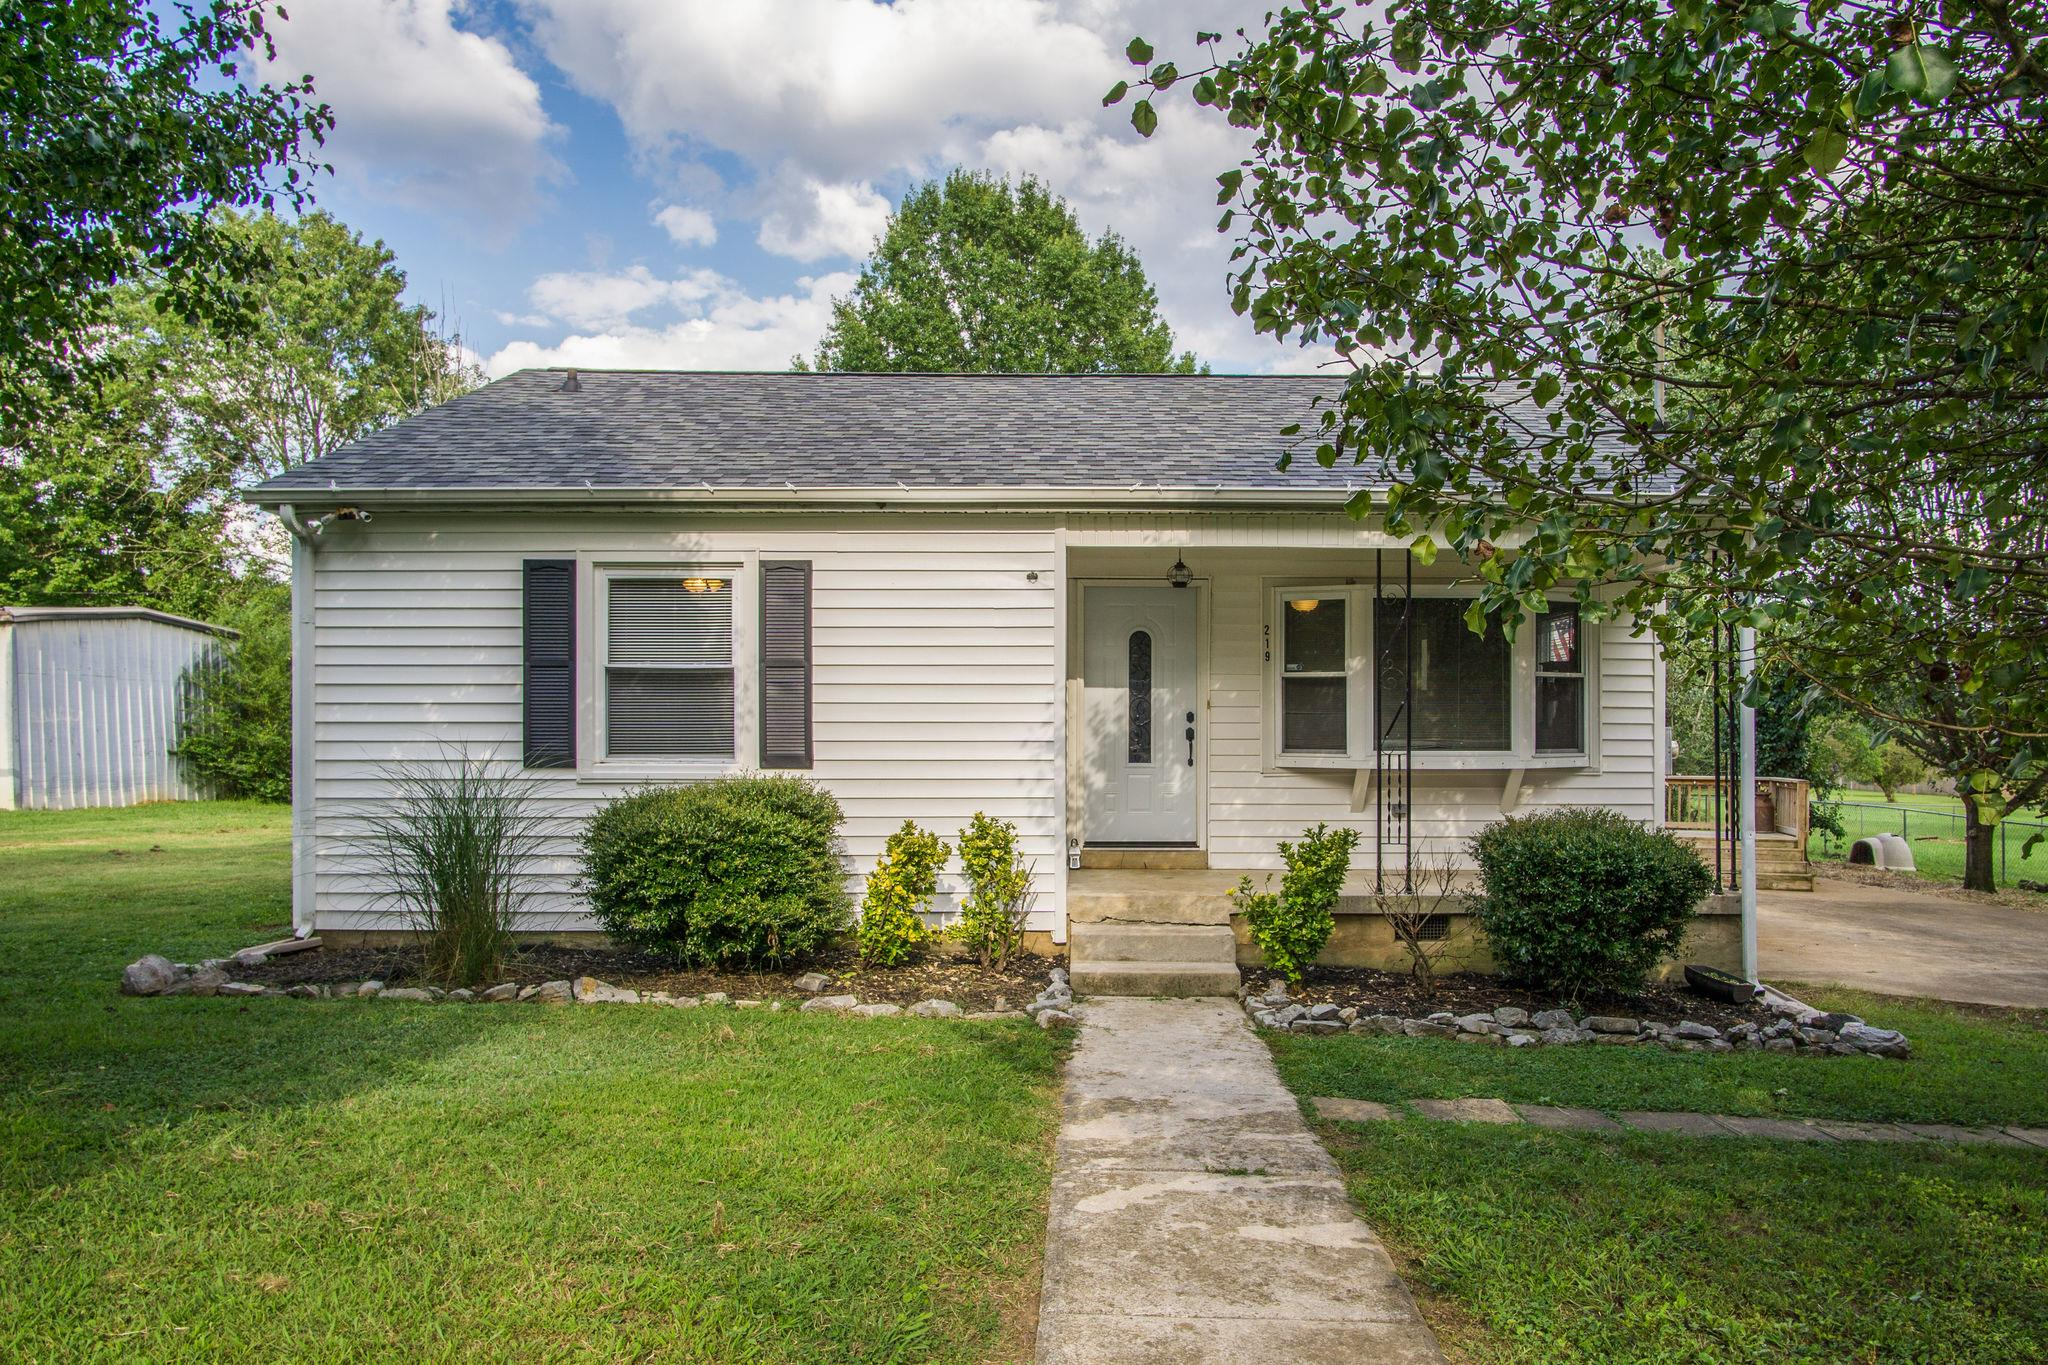 219 Stokes Ave, Lewisburg, TN 37091 - Lewisburg, TN real estate listing